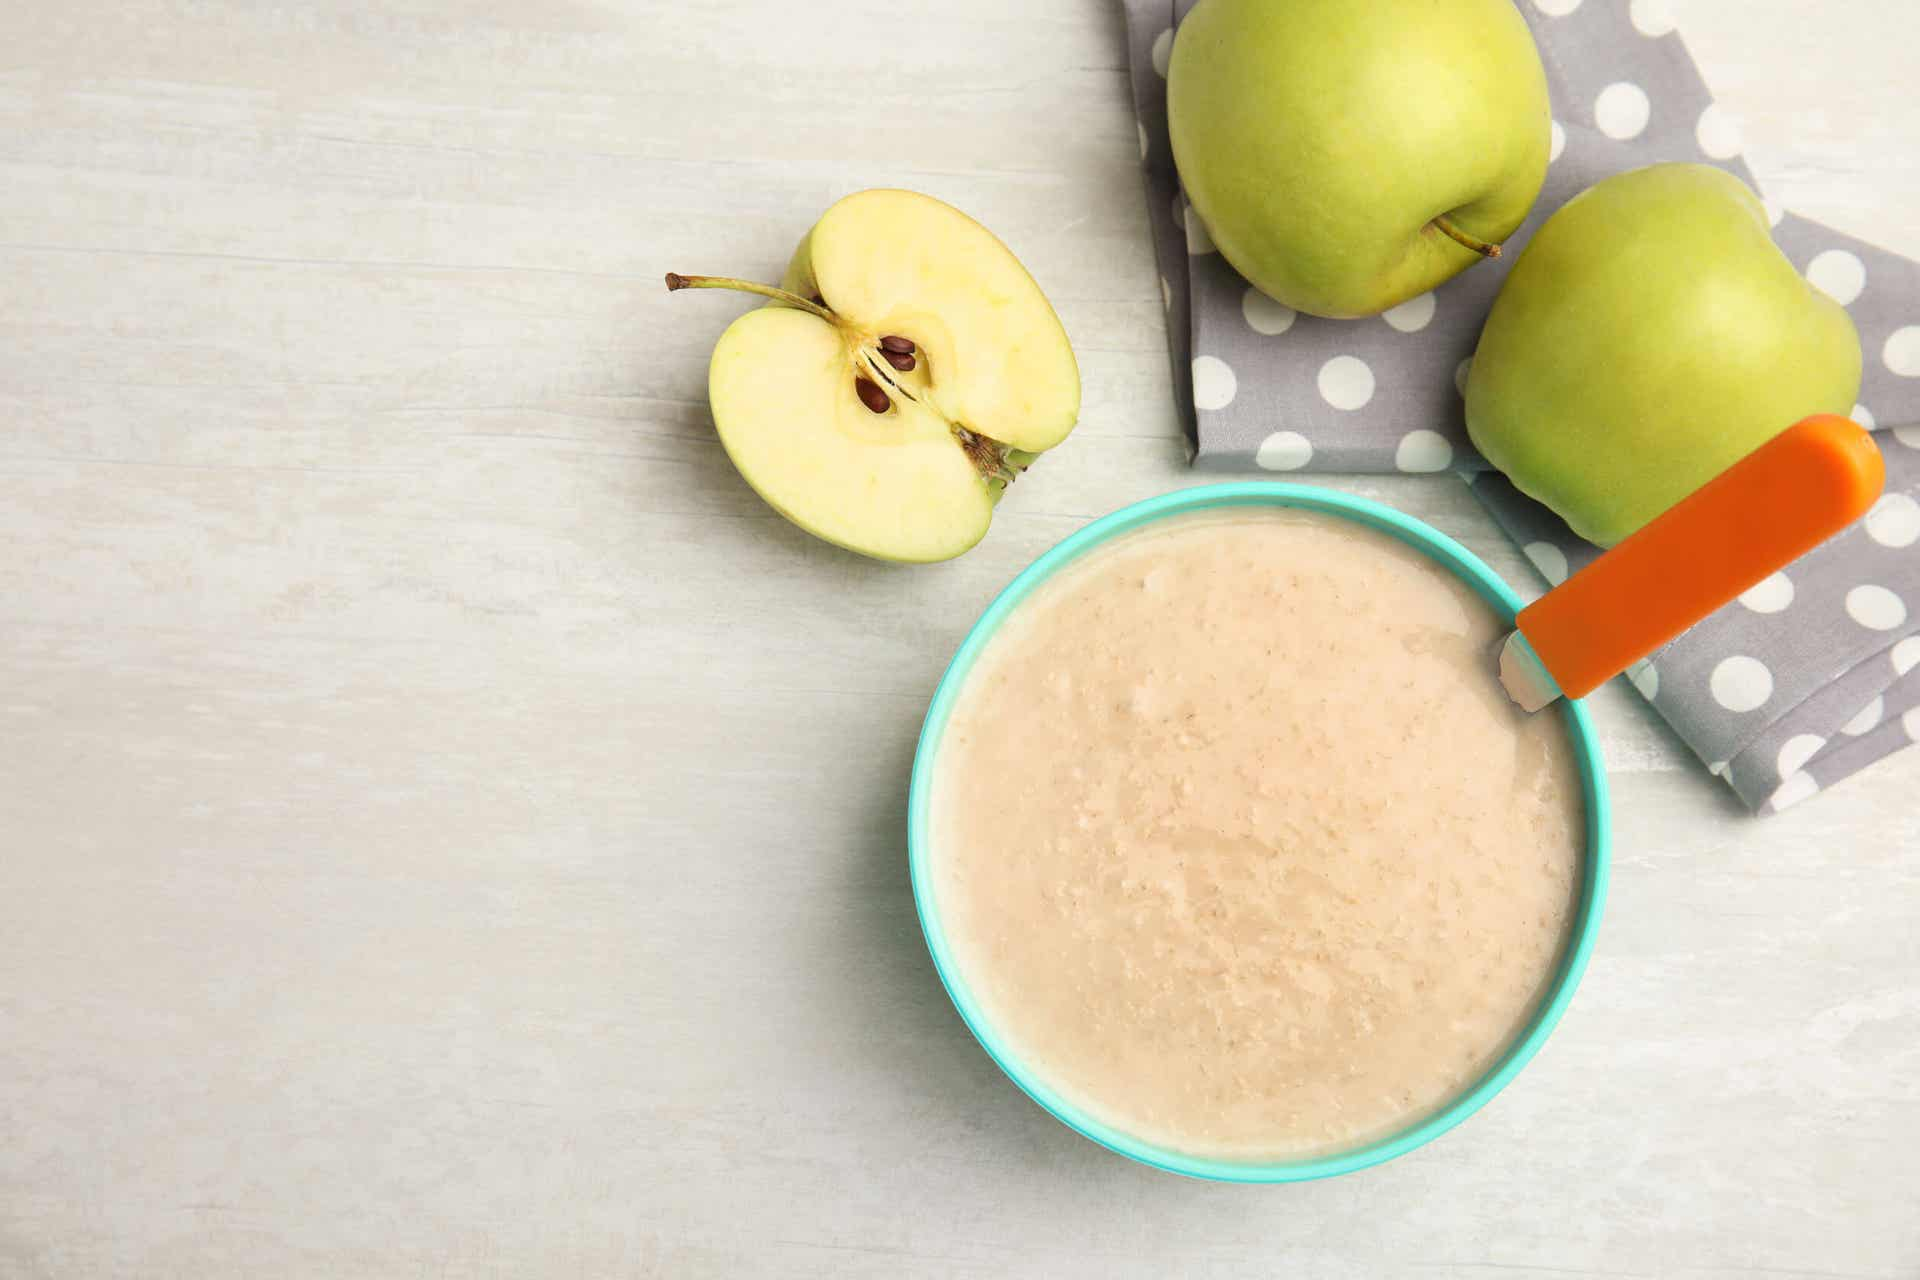 Homemade Baby Food Ideas: Choosing the Right Cereal